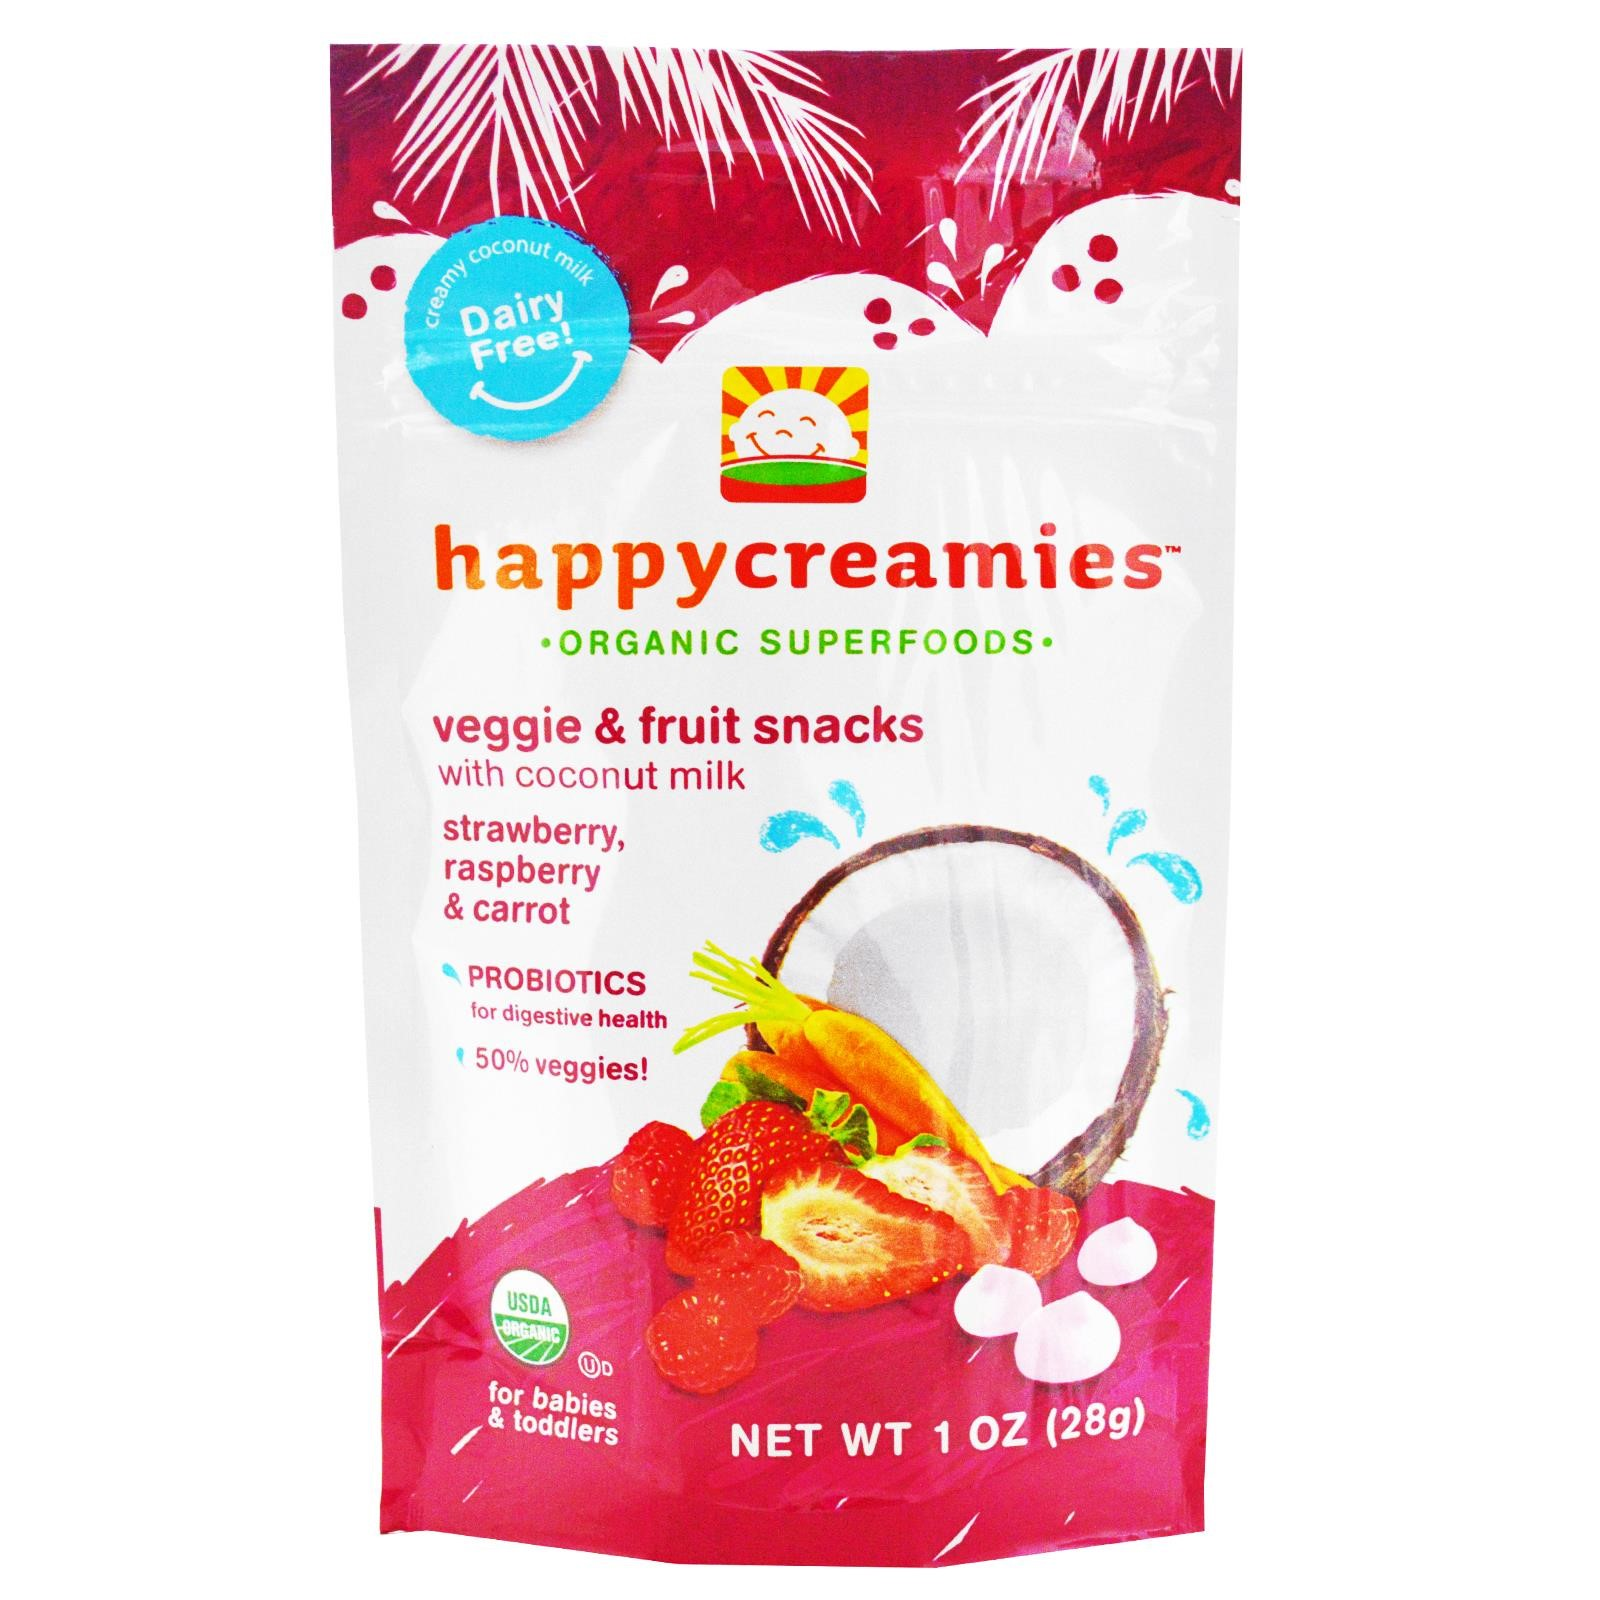 Happy Baby Coconut Creamies, Organic Baby Food, Strawberry, Raspberry & Carrot - 1 oz bag, 1.0 OZ